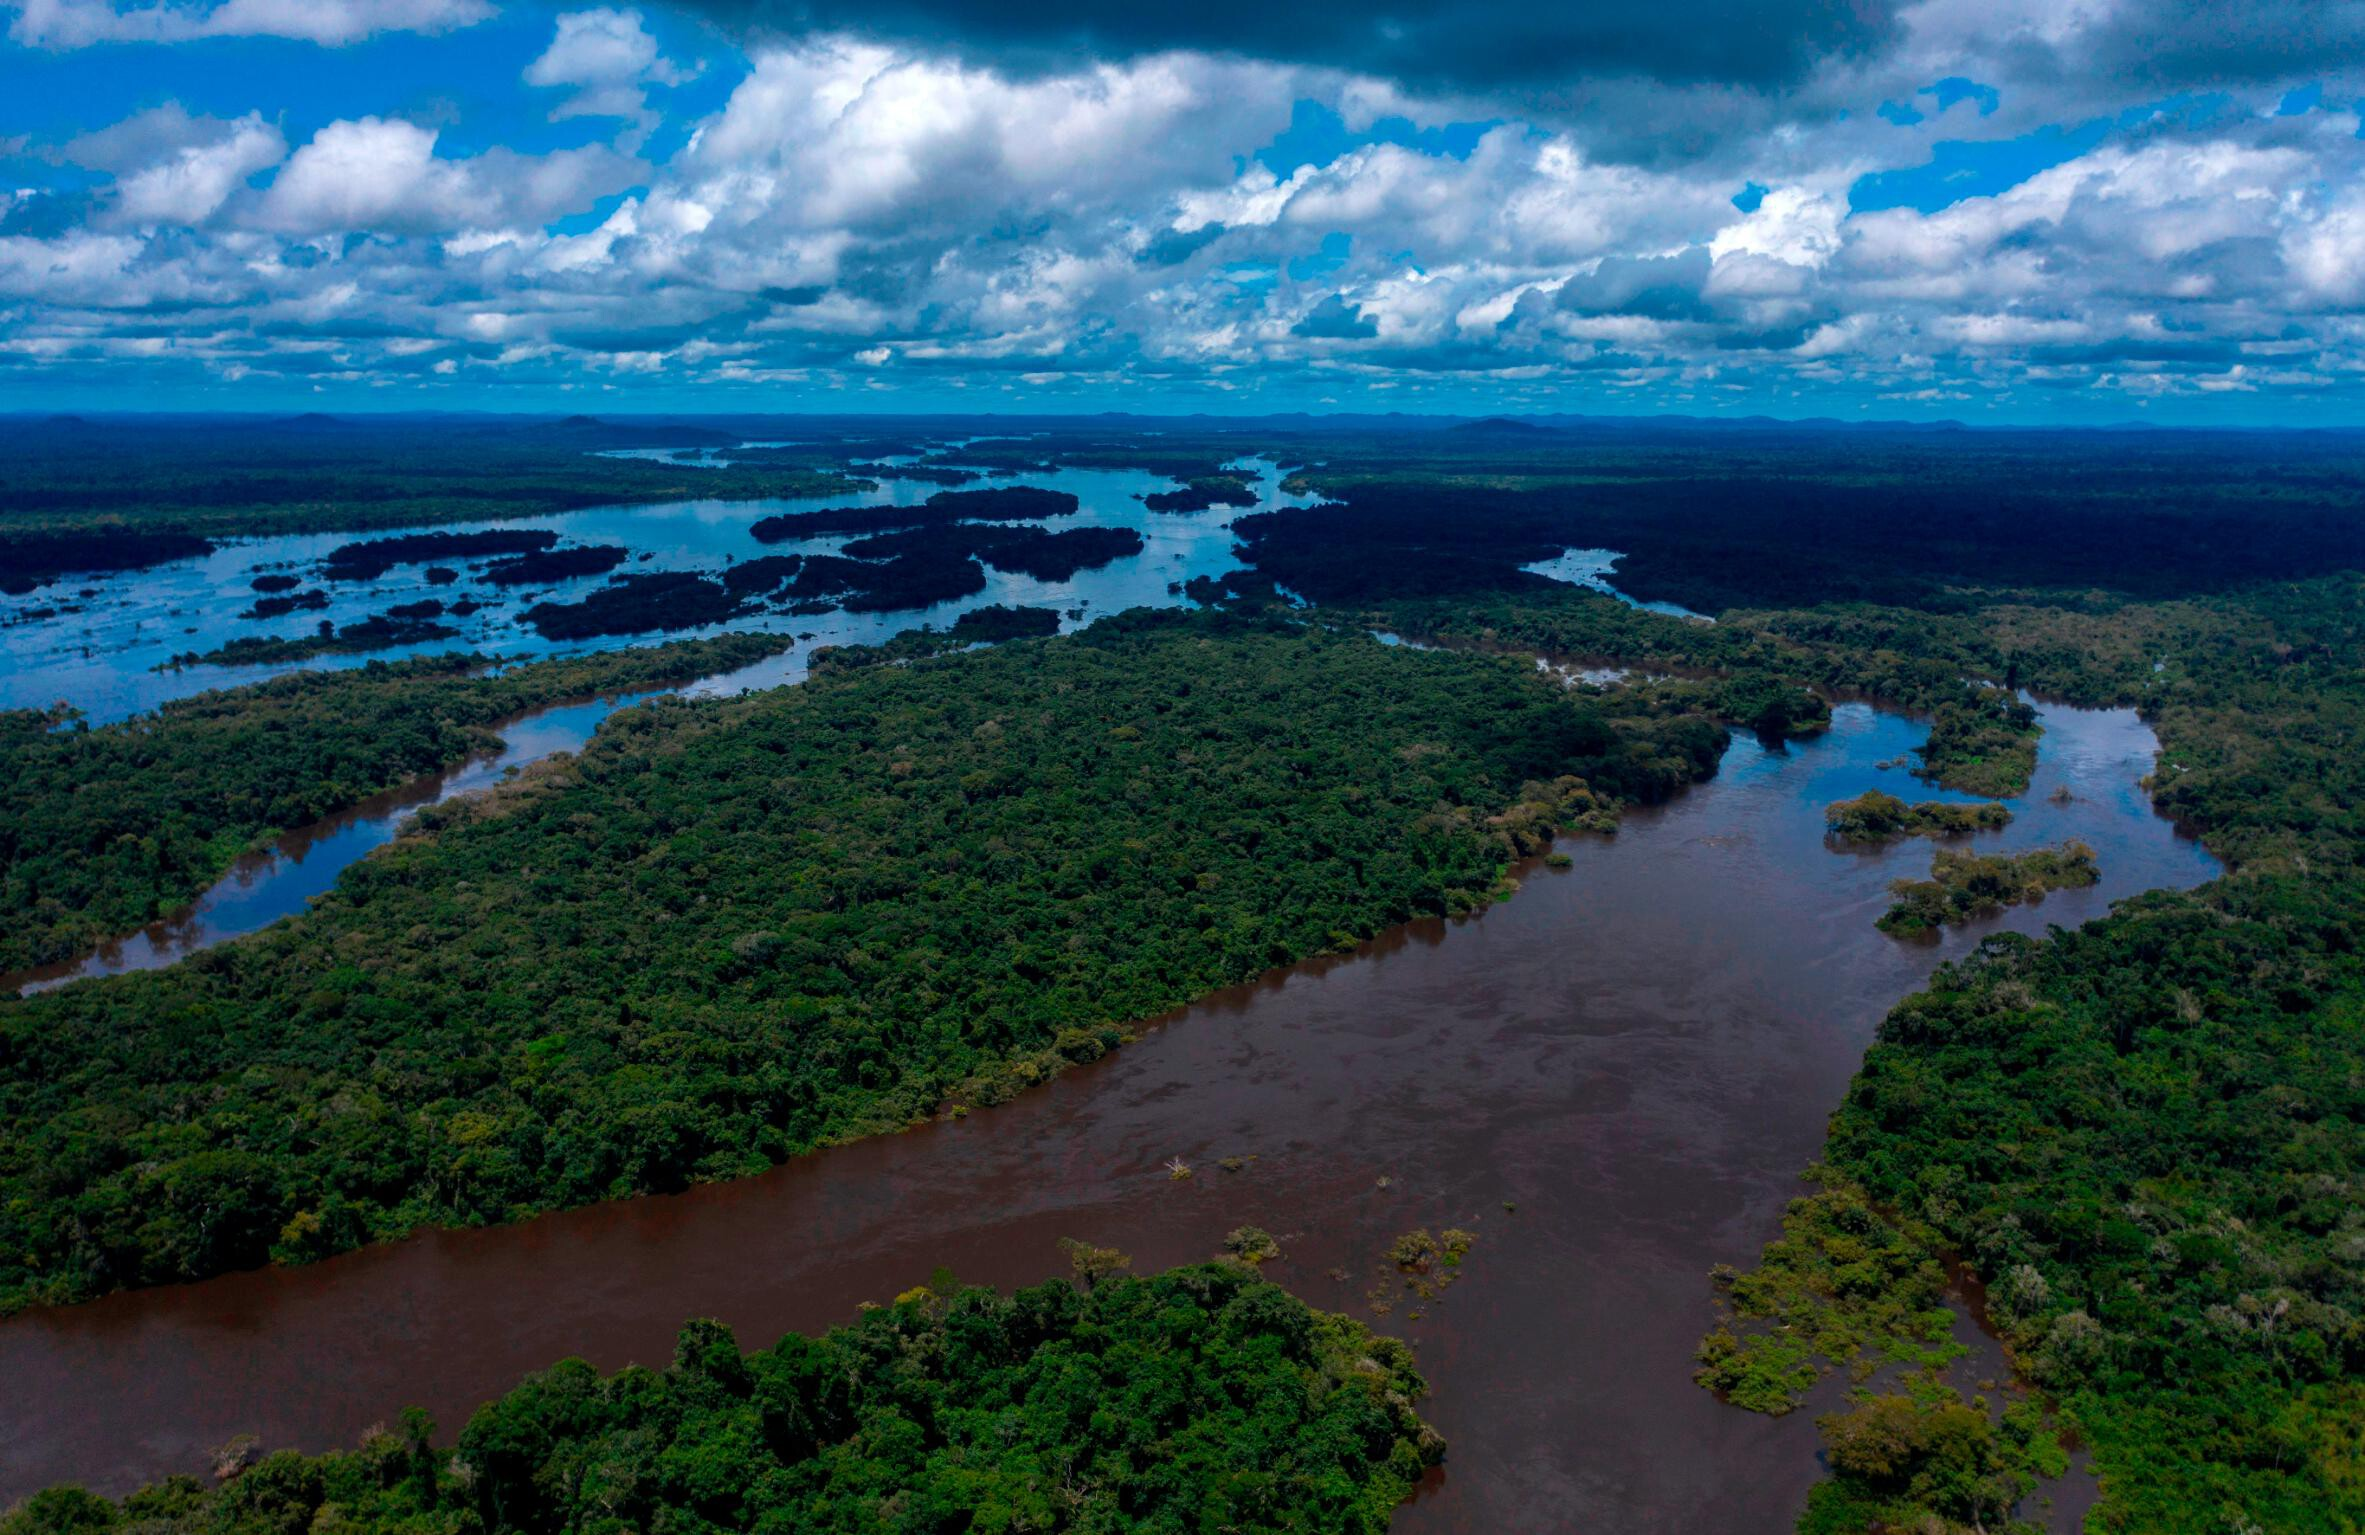 Rainforests are under siege. Here's what you should know.